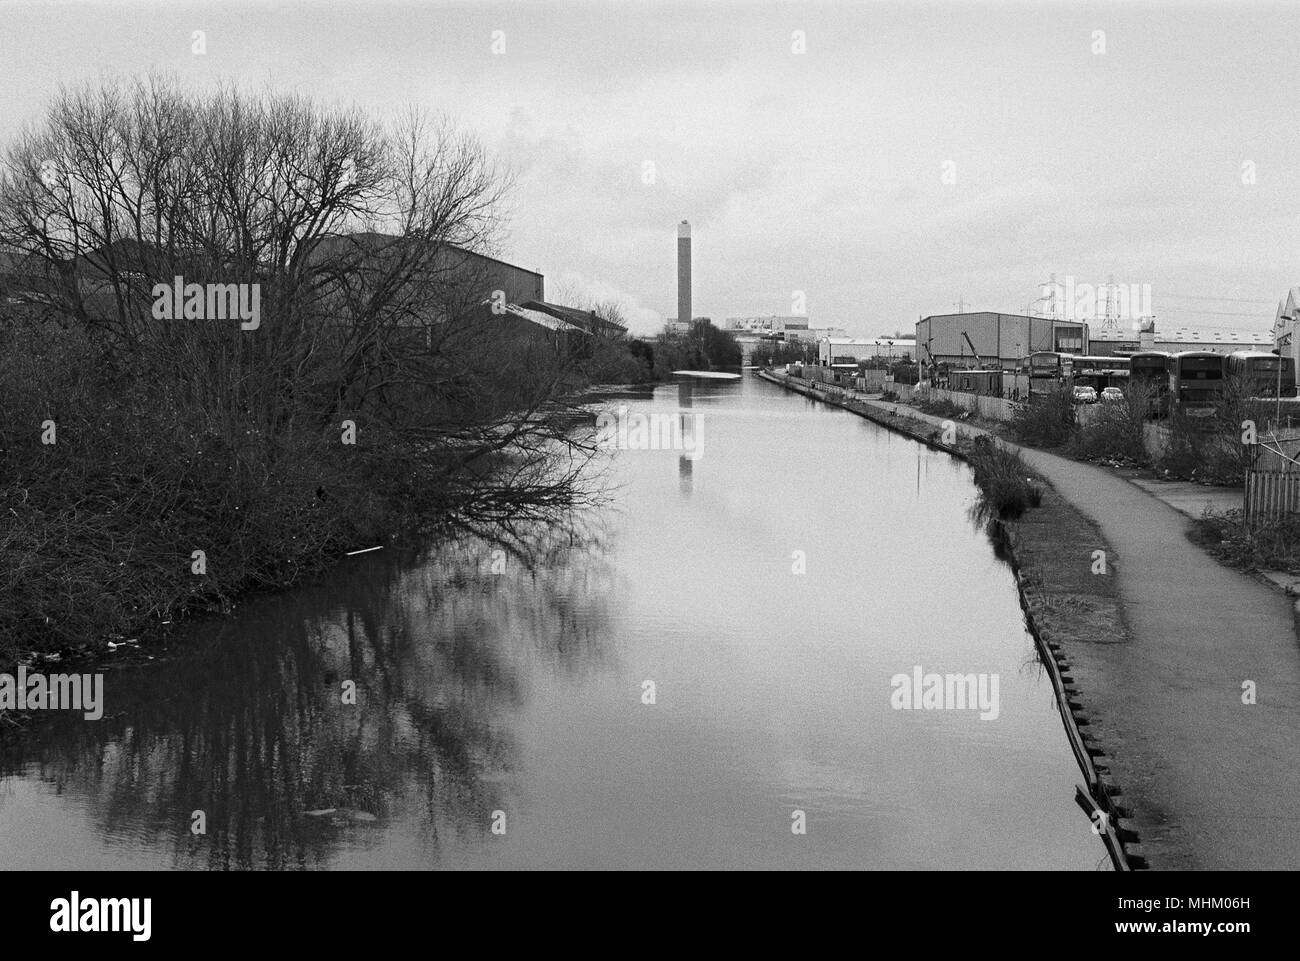 River Lea in winter near Edmonton, North London UK, looking north towards Enfield - Stock Image